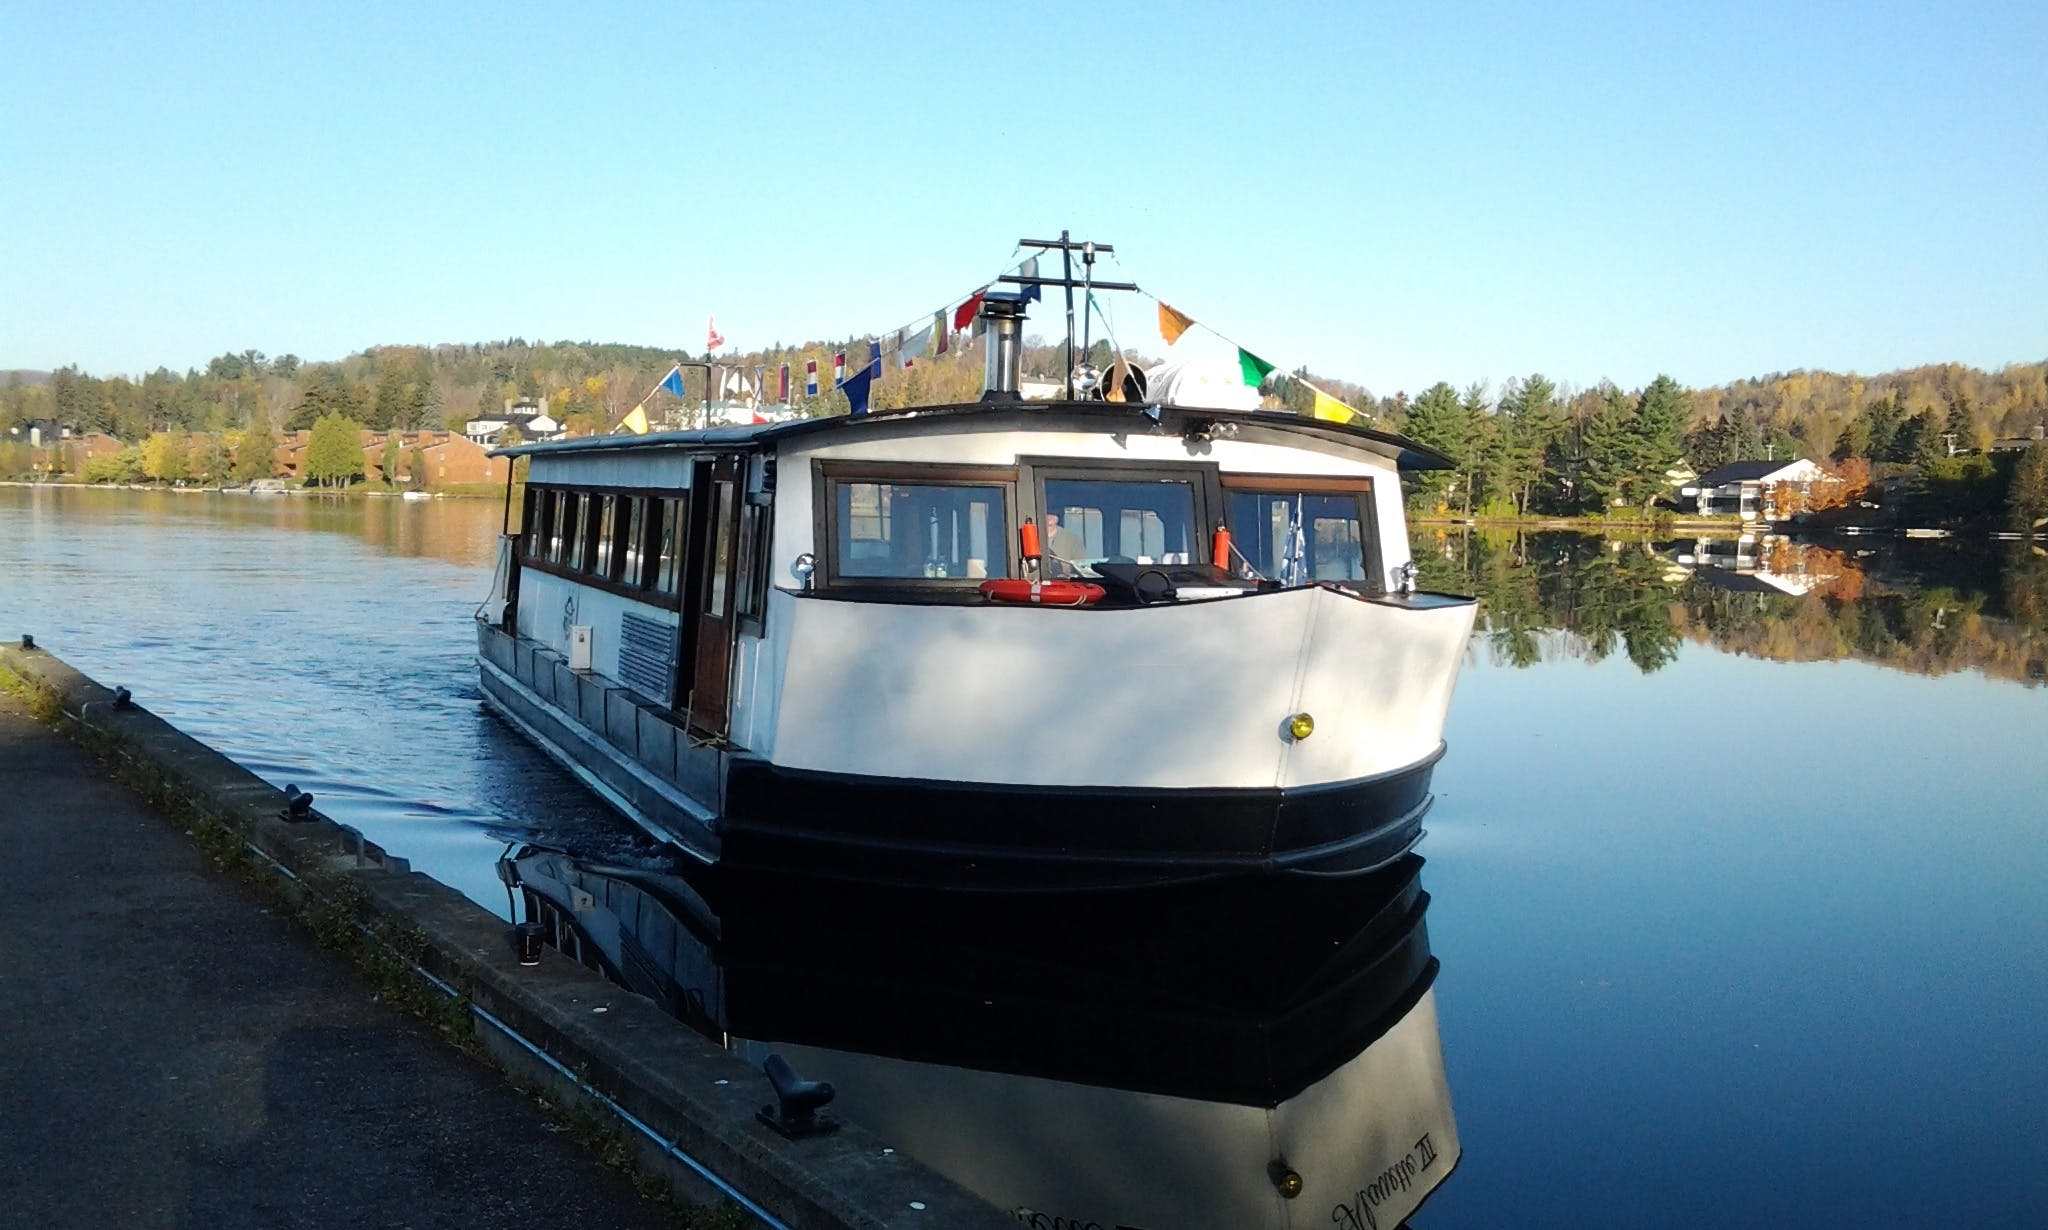 Amazing Boat Tour on Lac Des Sables in Sainte-Agathe-des-Monts